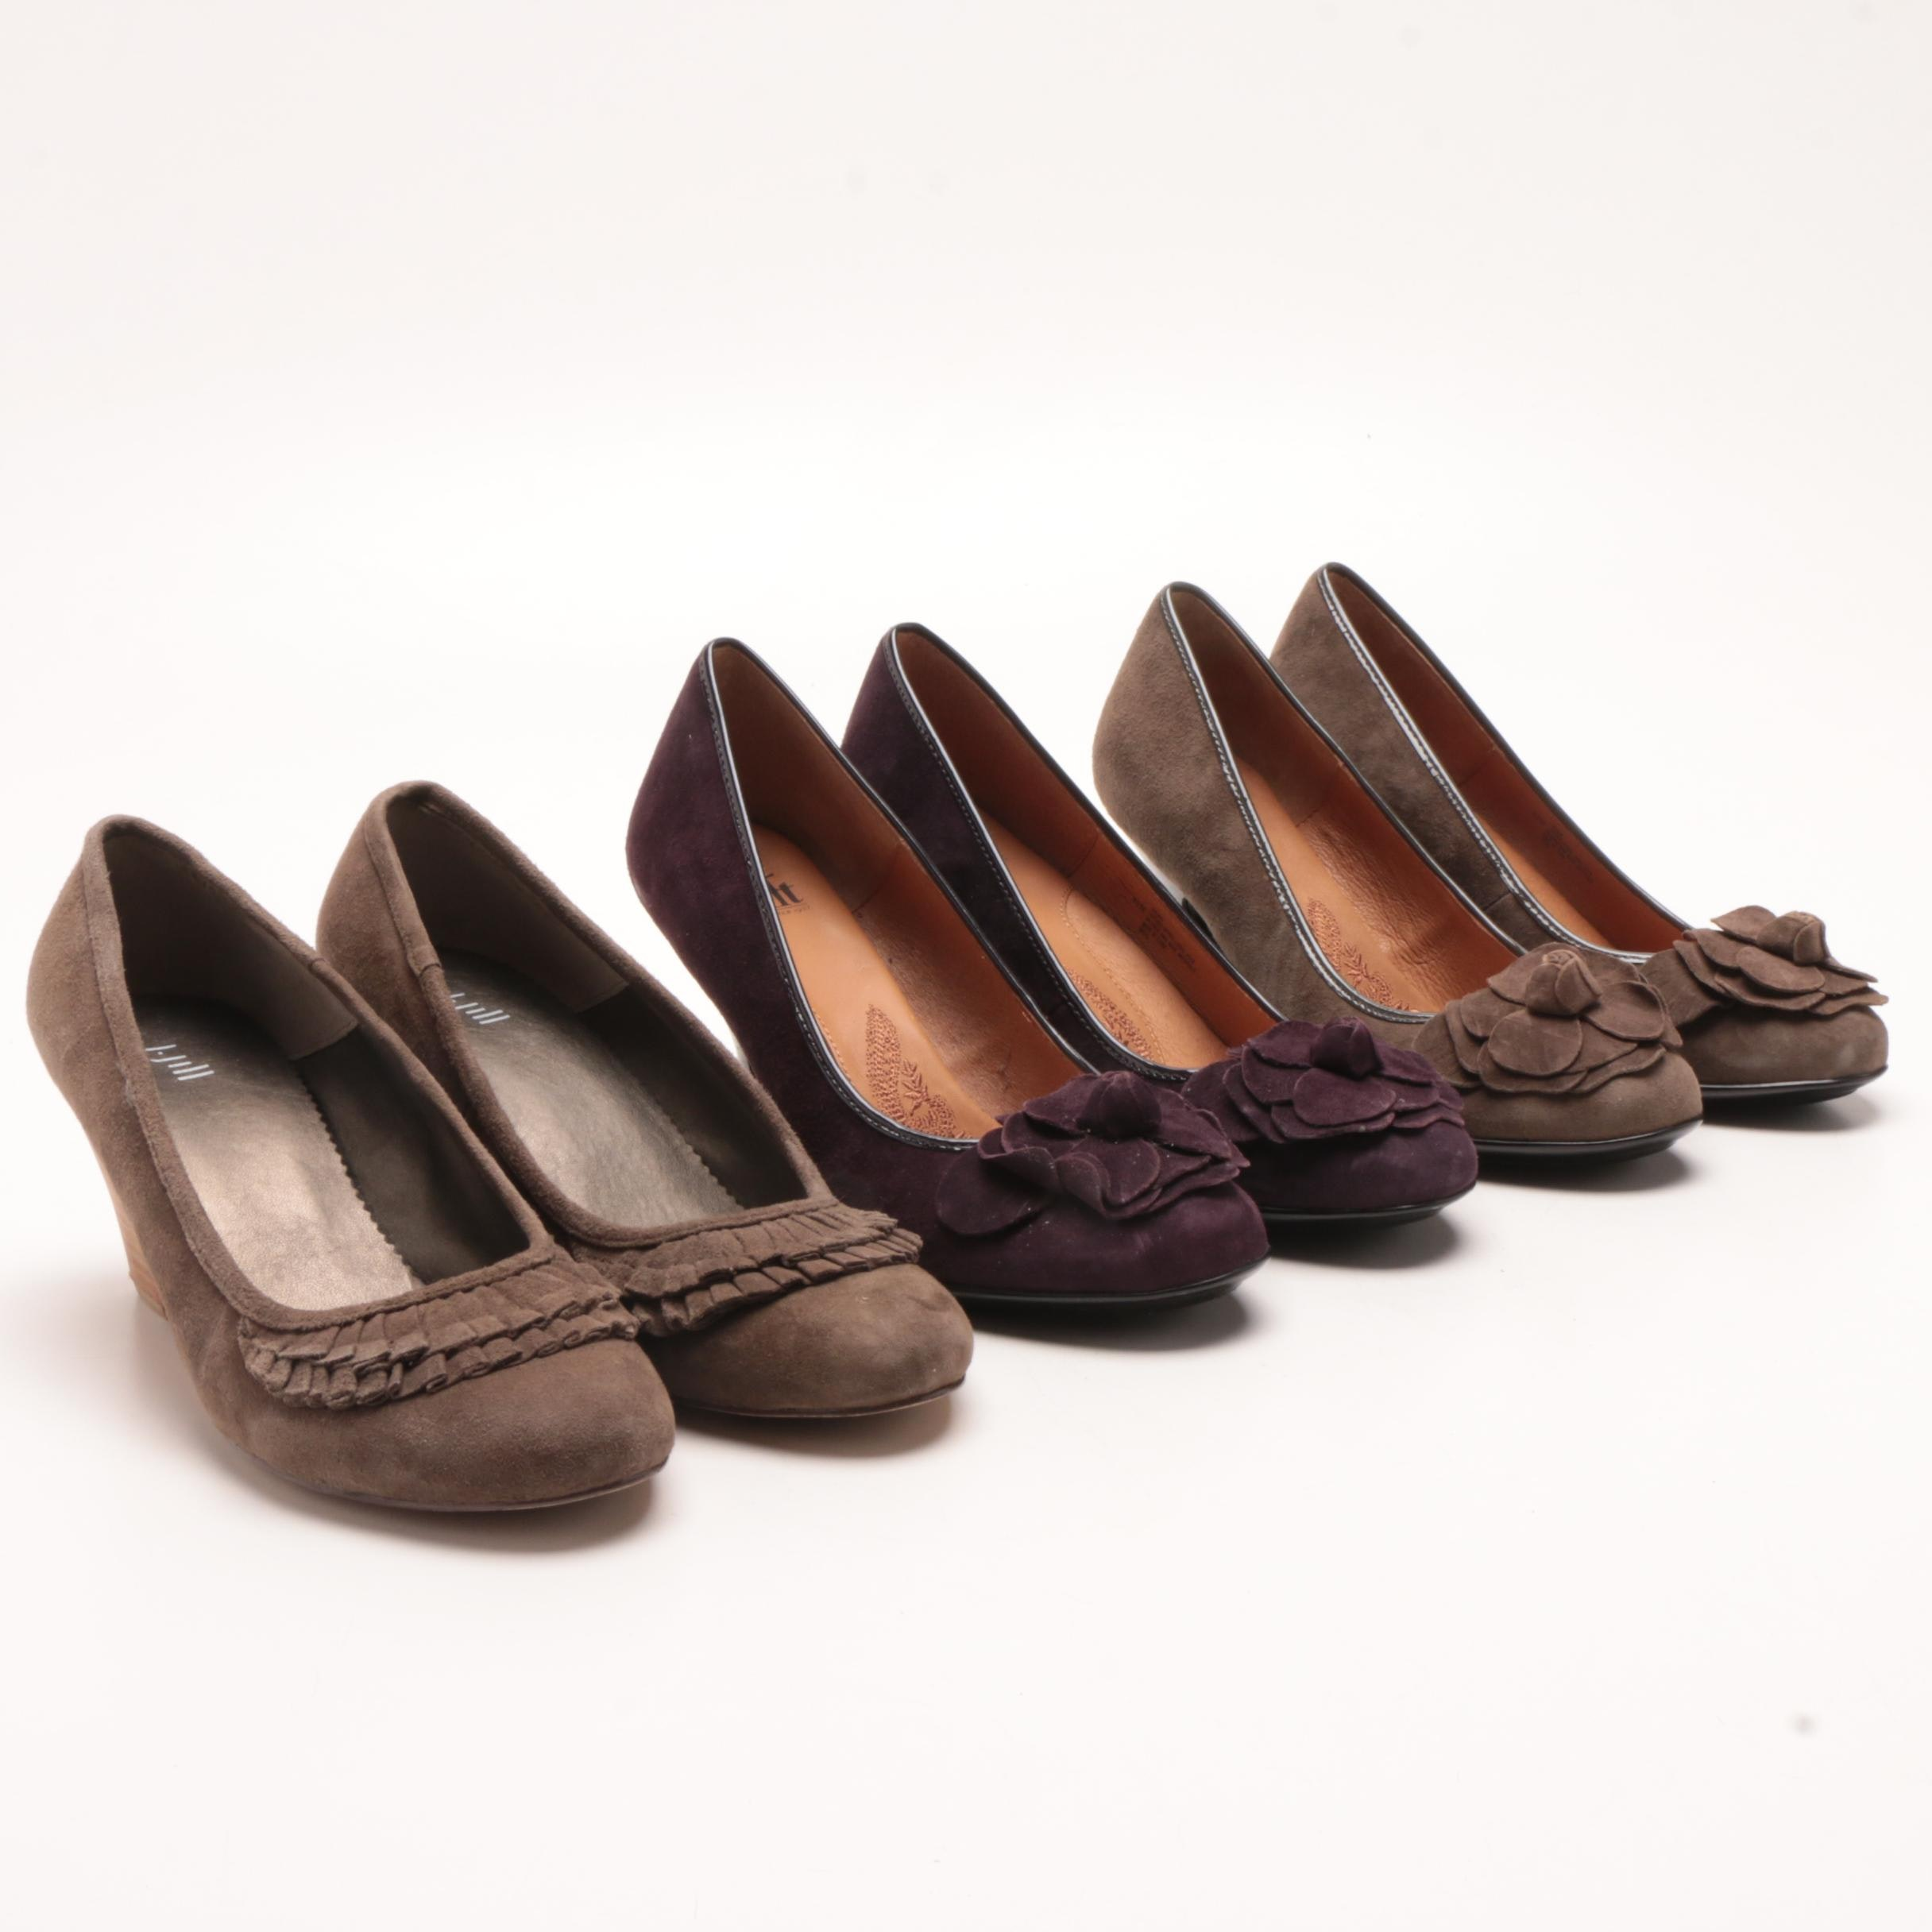 Söfft Suede High-Heeled Pumps and J. Jill Suede Wedges